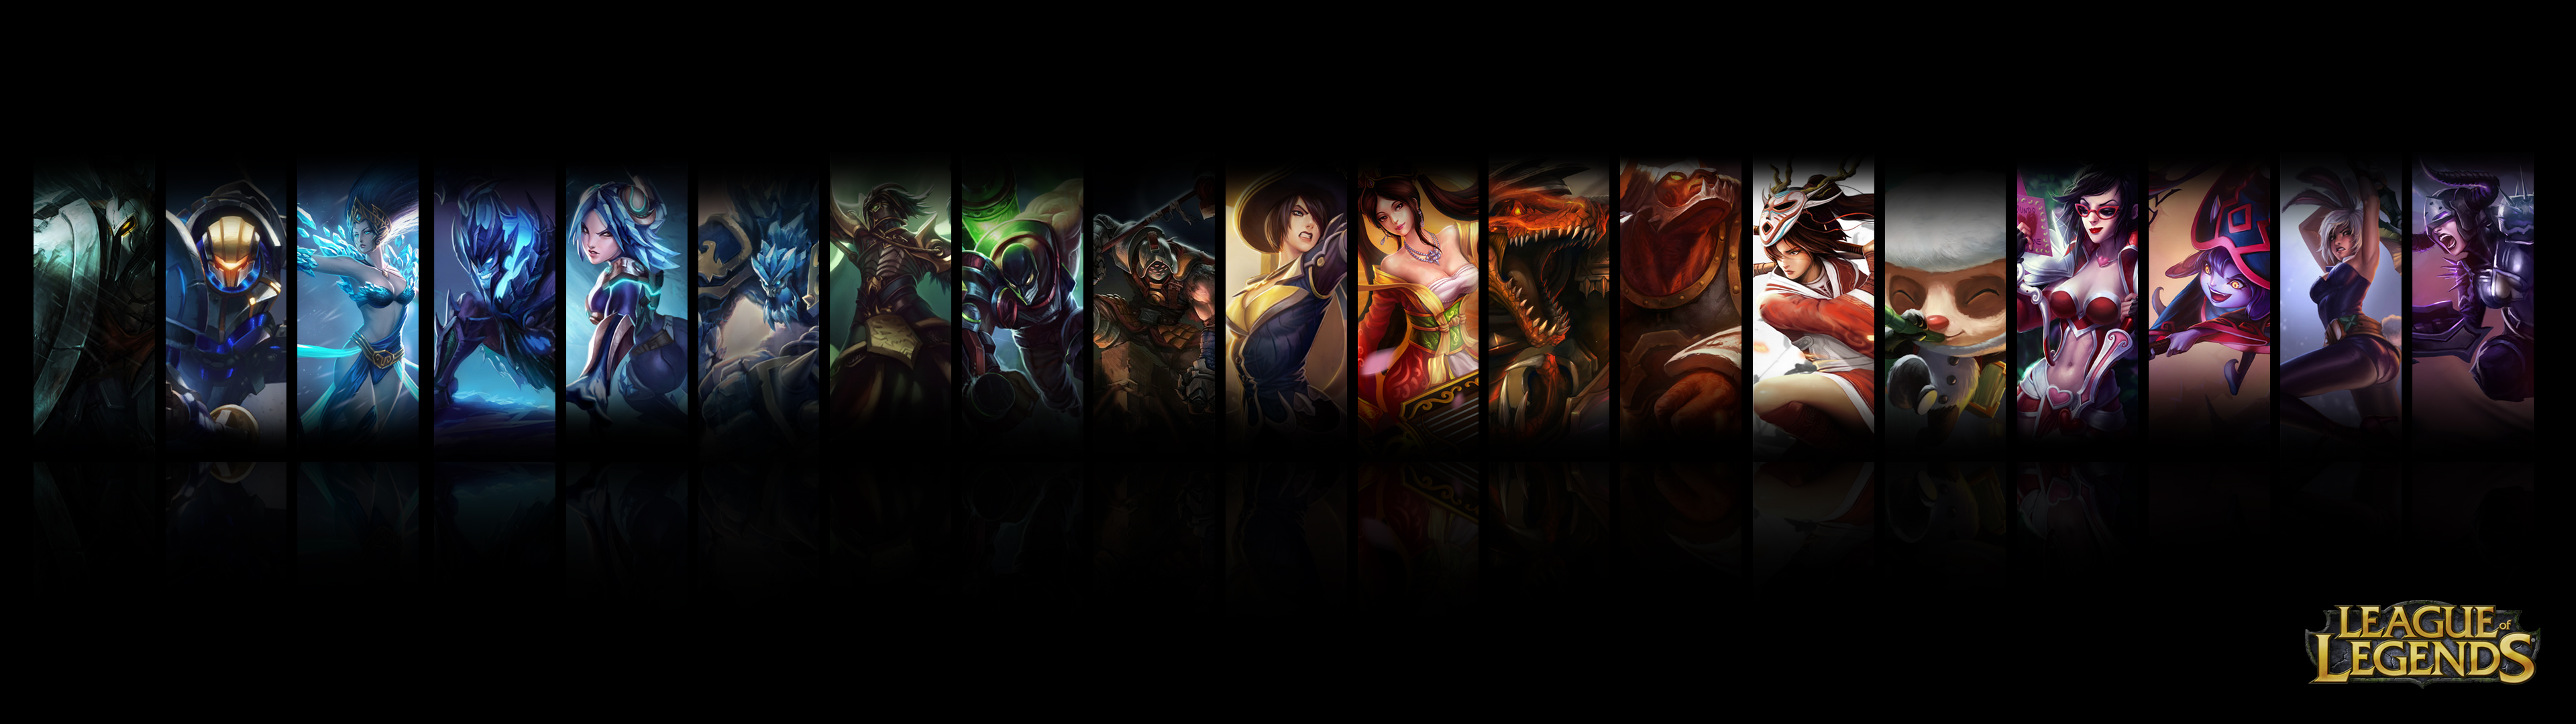 league of legends dual screen wallpaper by jrkdo fan art wallpaper 3840x1080